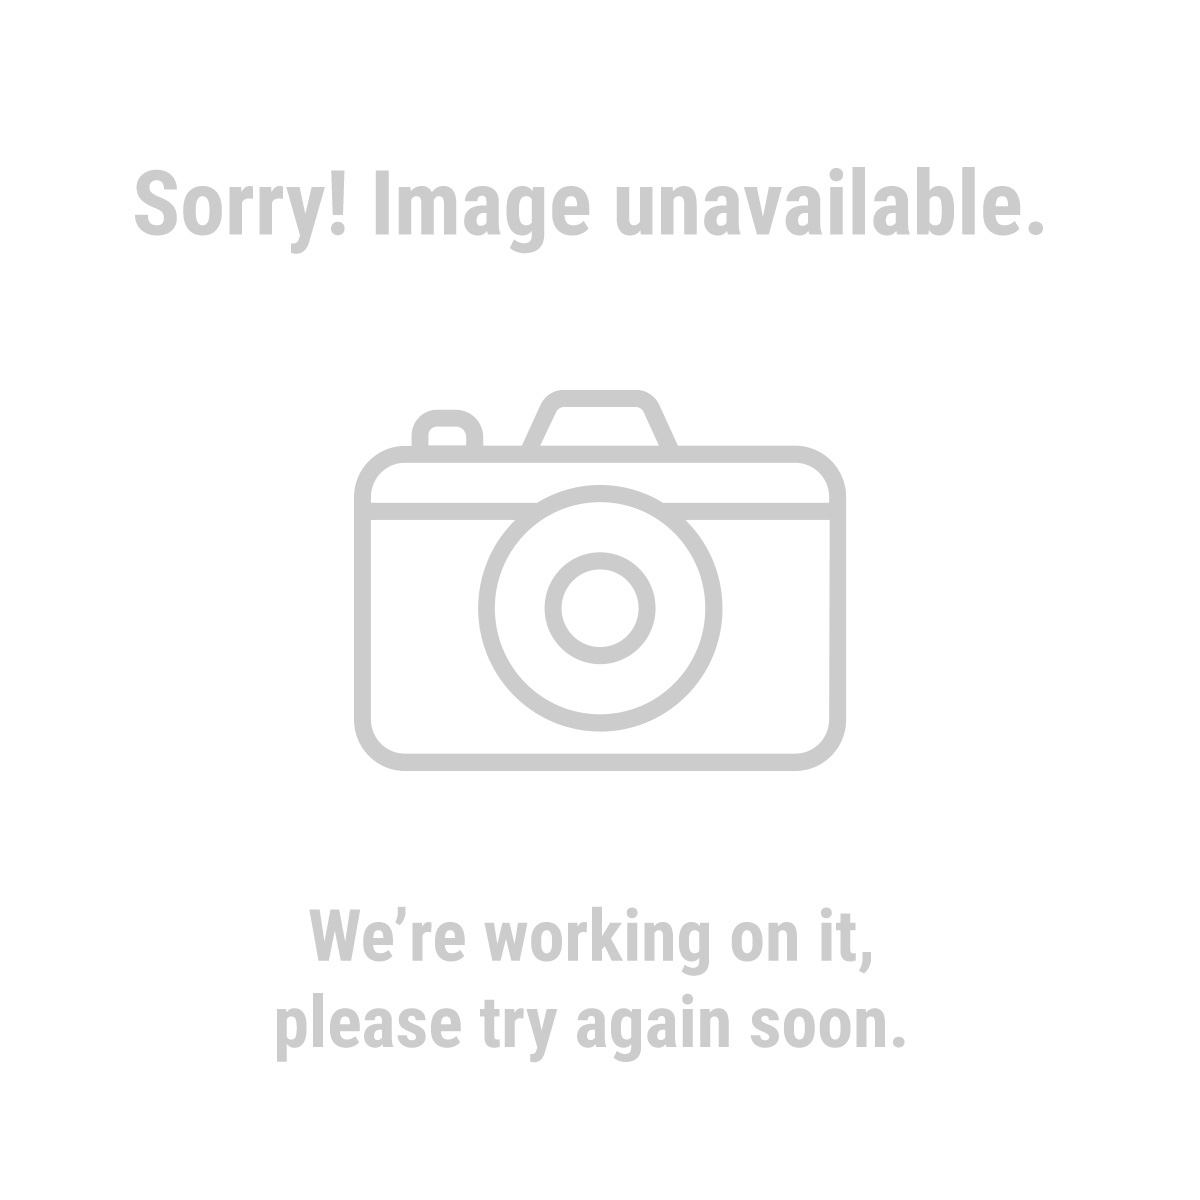 Western Safety Gloves 60447 Mechanic's Gloves, Large